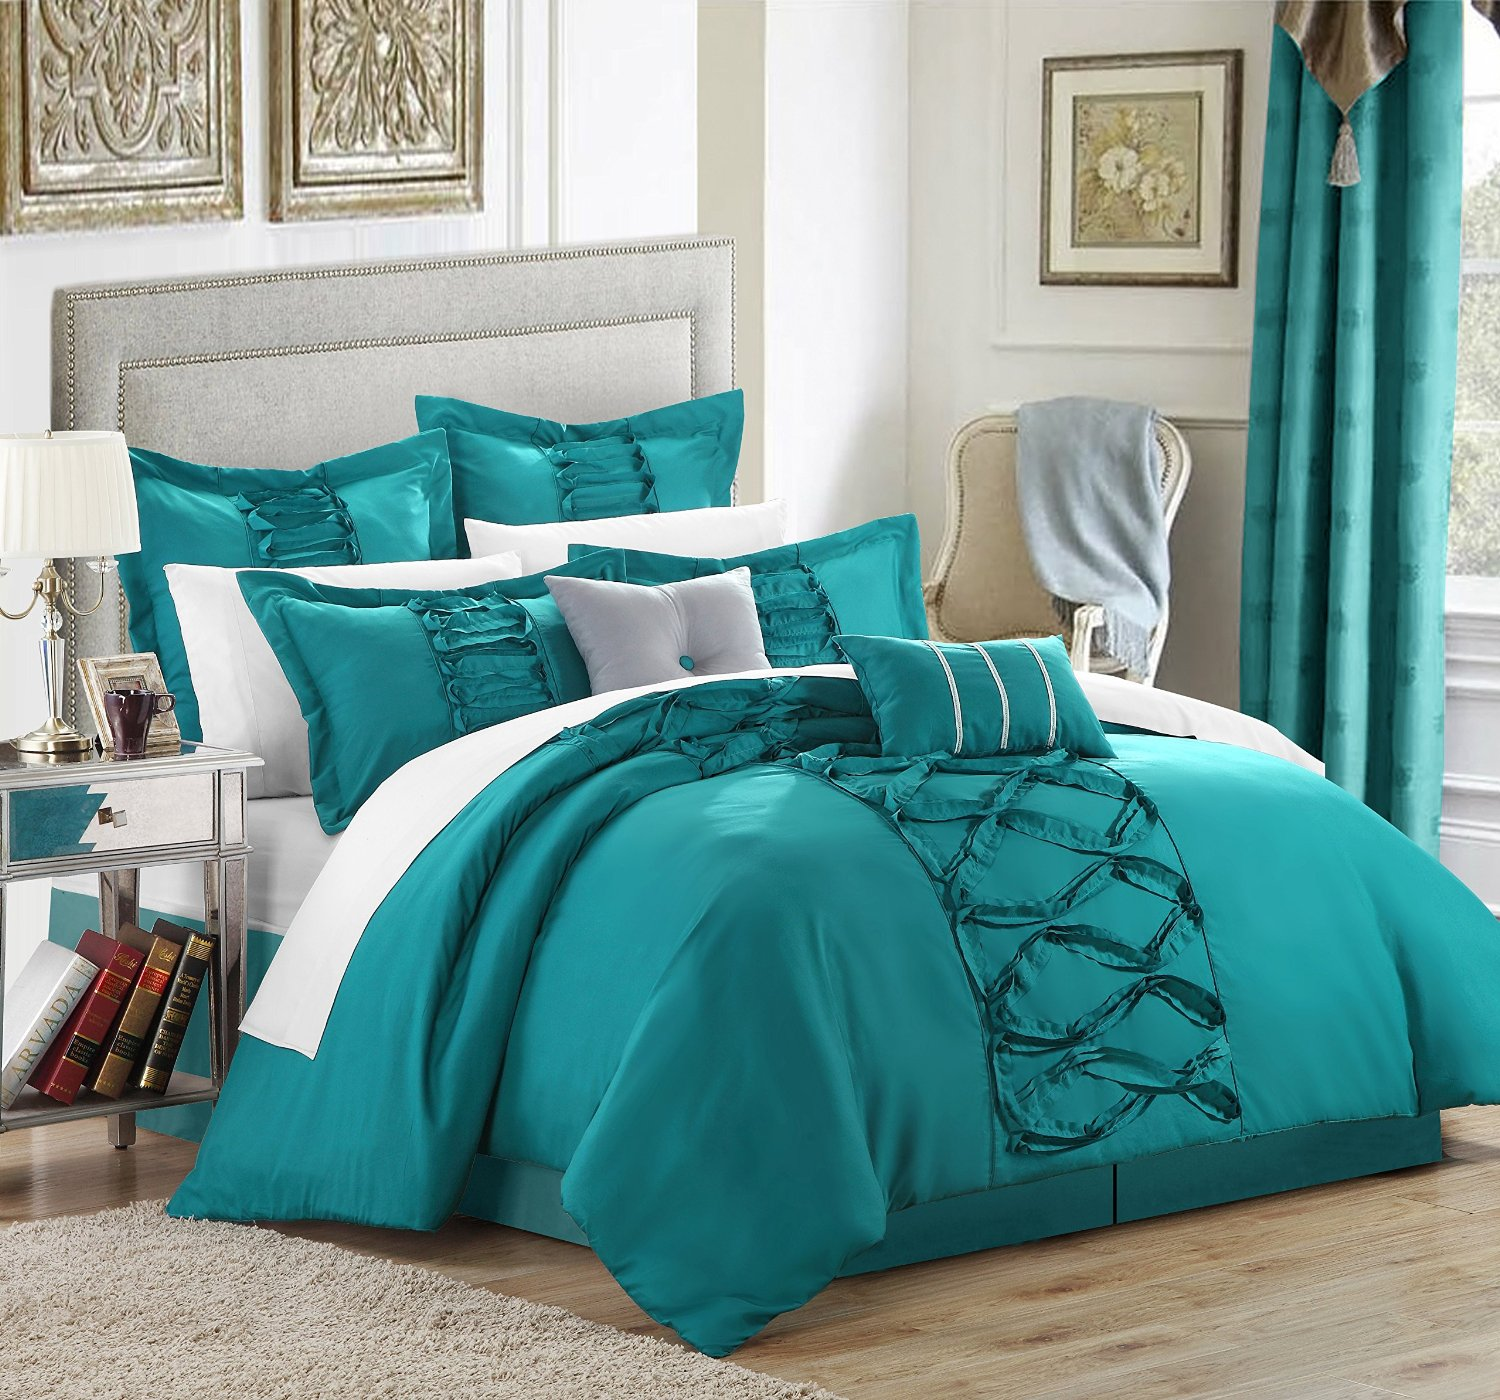 bedding home ideas sets coral design unique blue best teal ly matching brown of navy comforter gray set and dark king curtains